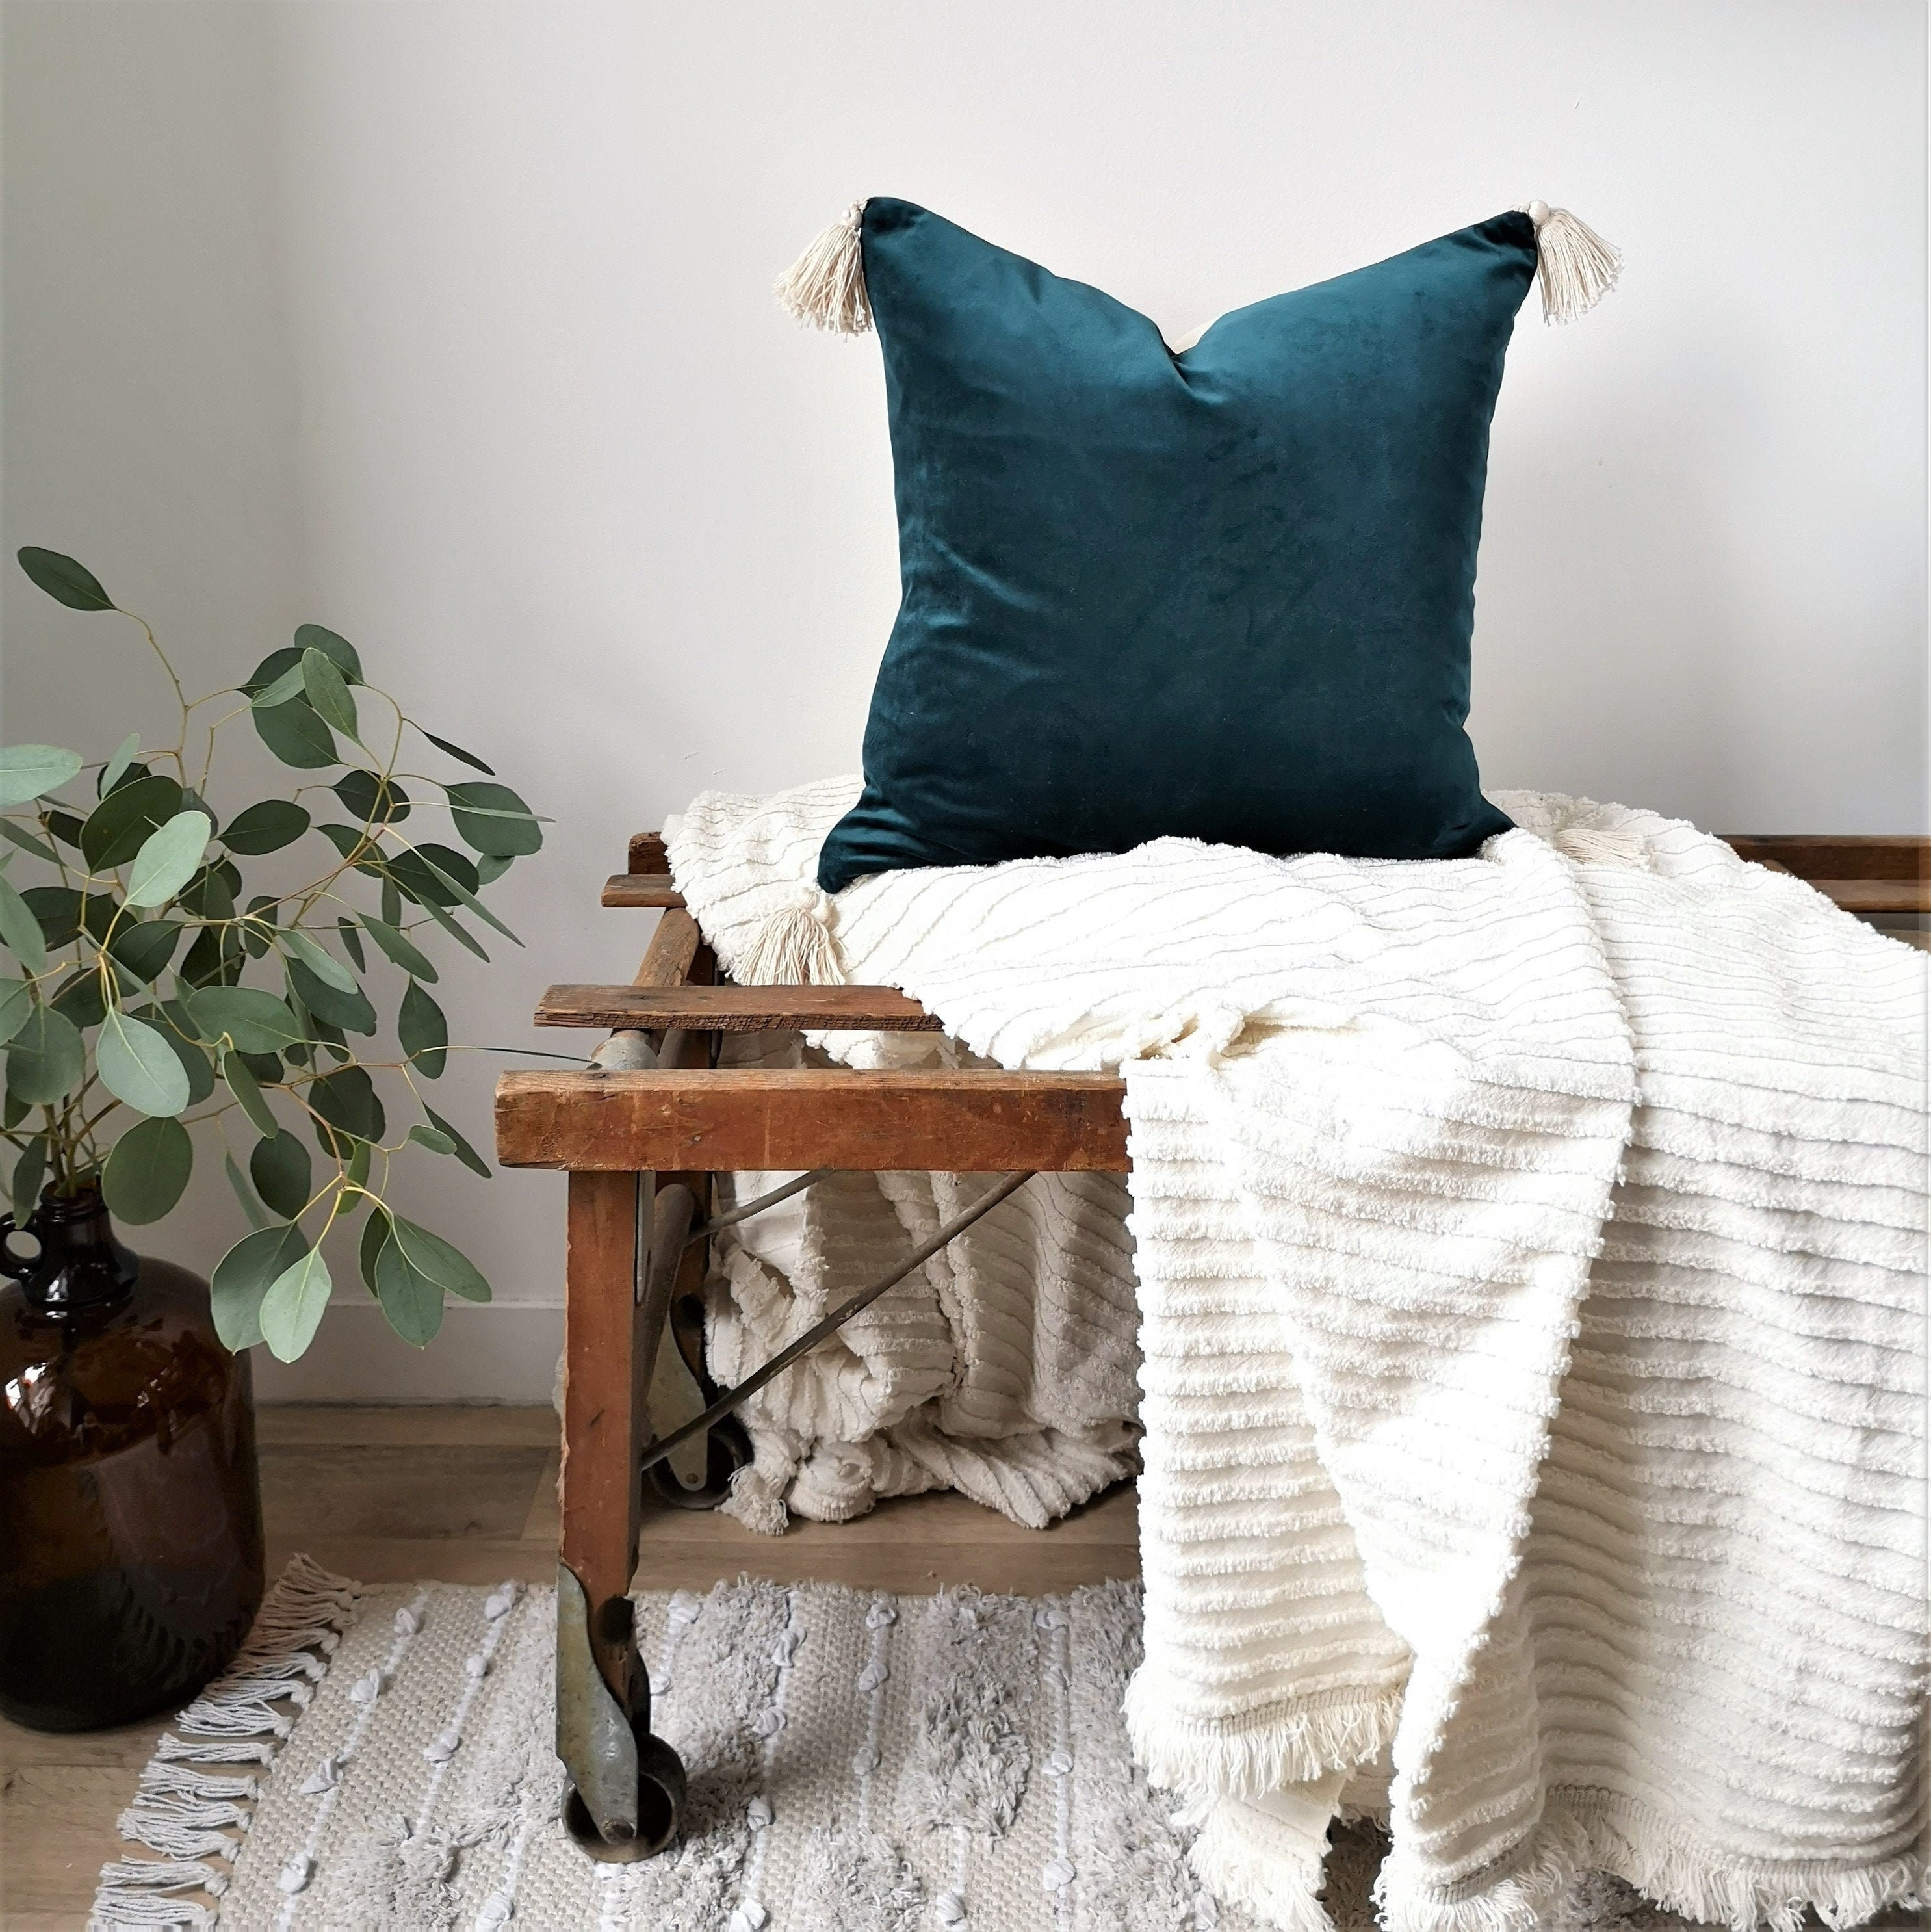 Salon Taupe Et Turquoise collection - natural canevas - blue velvet 18''x18' square cushion cover,  polyester or down padding